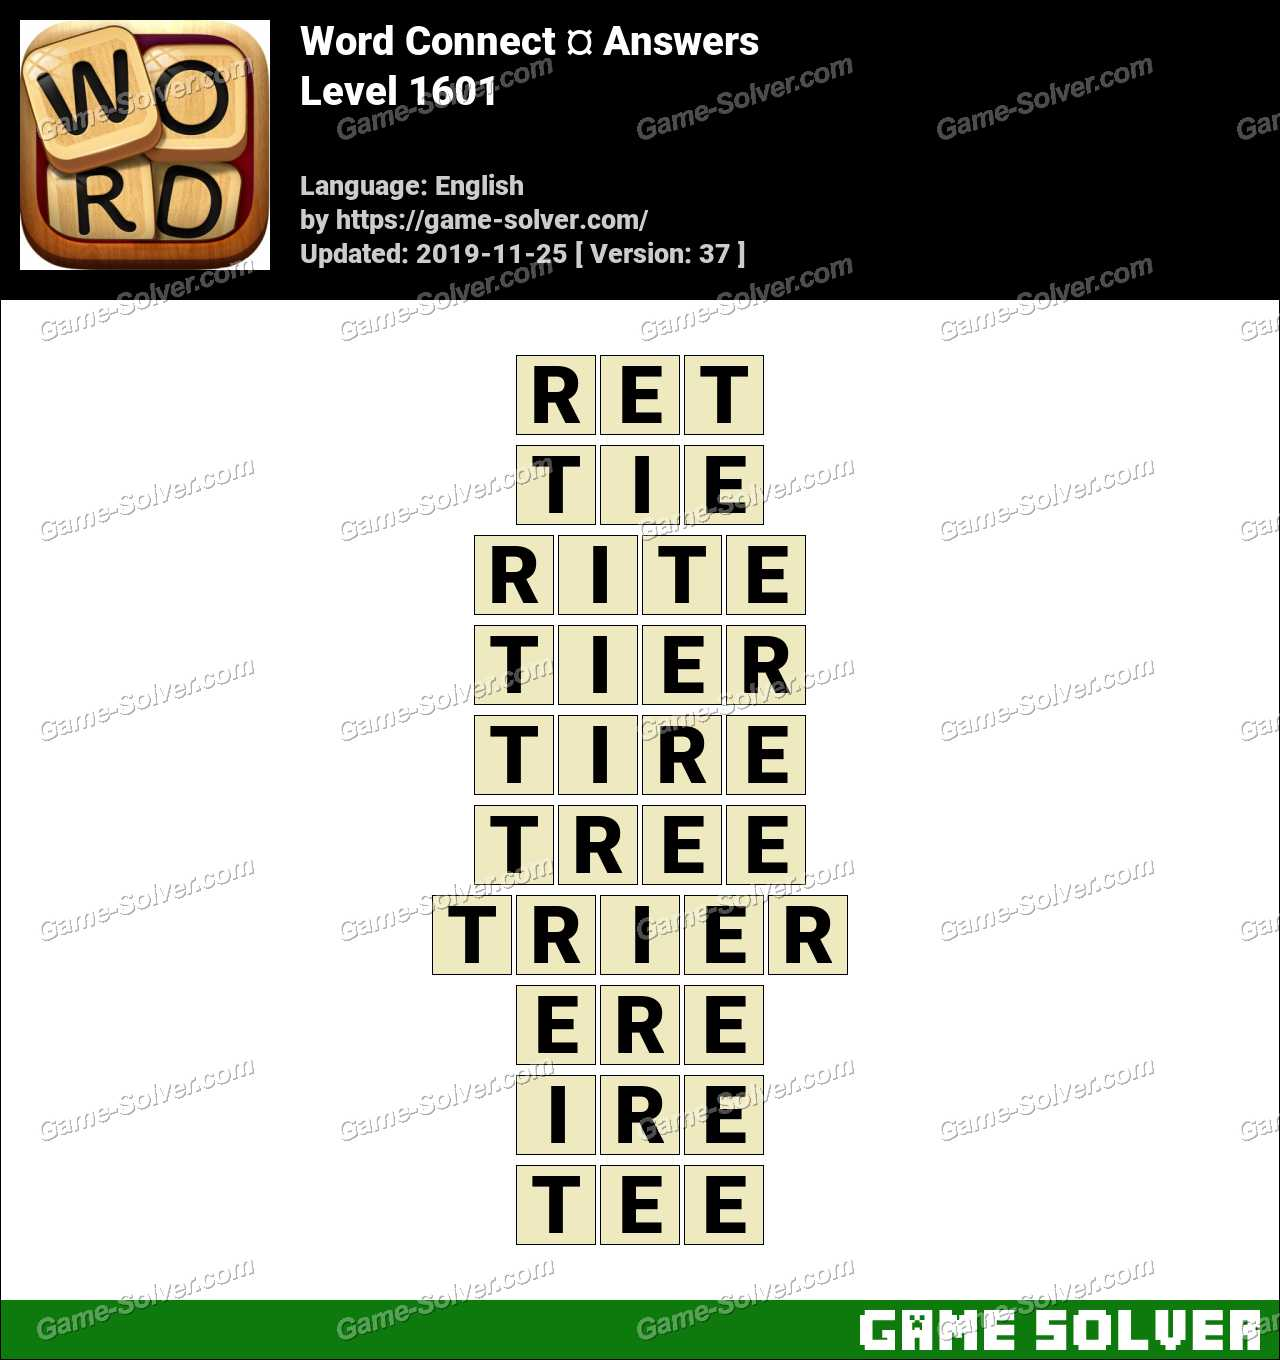 Word Connect Level 1601 Answers